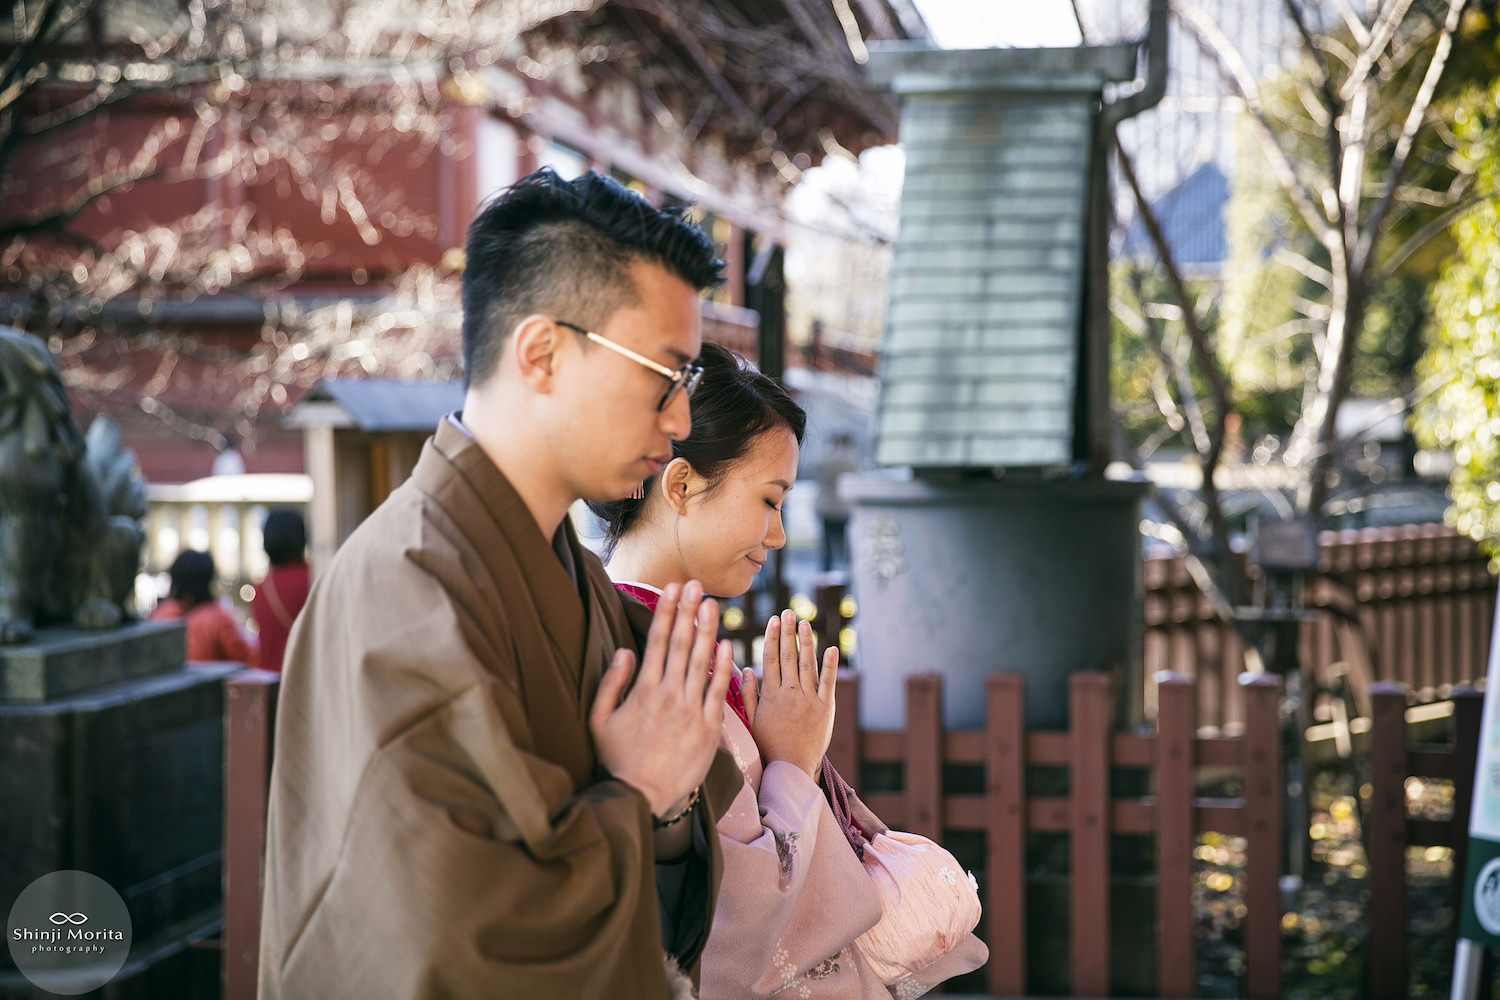 A couple praying at the temple in Asakusa wearing kimono